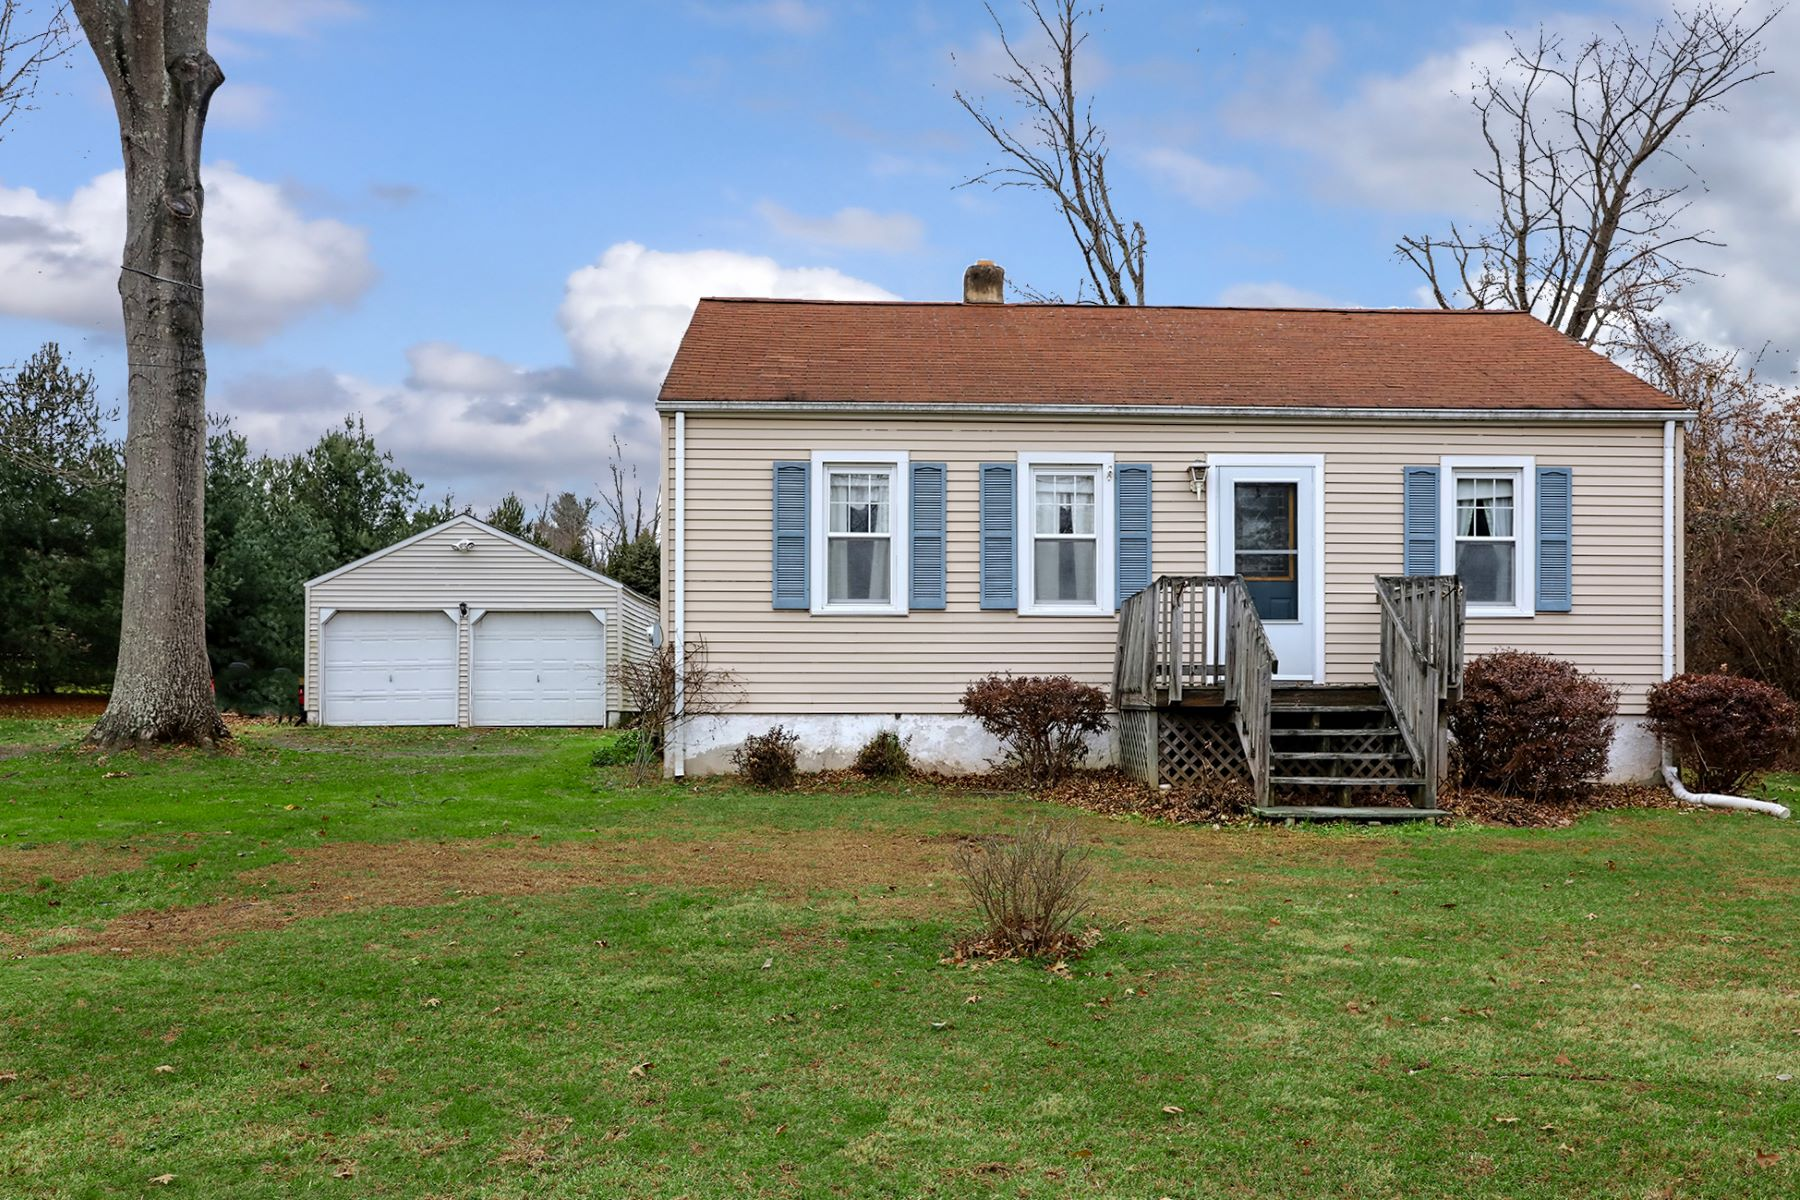 Single Family Home for Sale at Fix And Flip! 27 Old Washington Crossing Road, Titusville, New Jersey 08560 United States